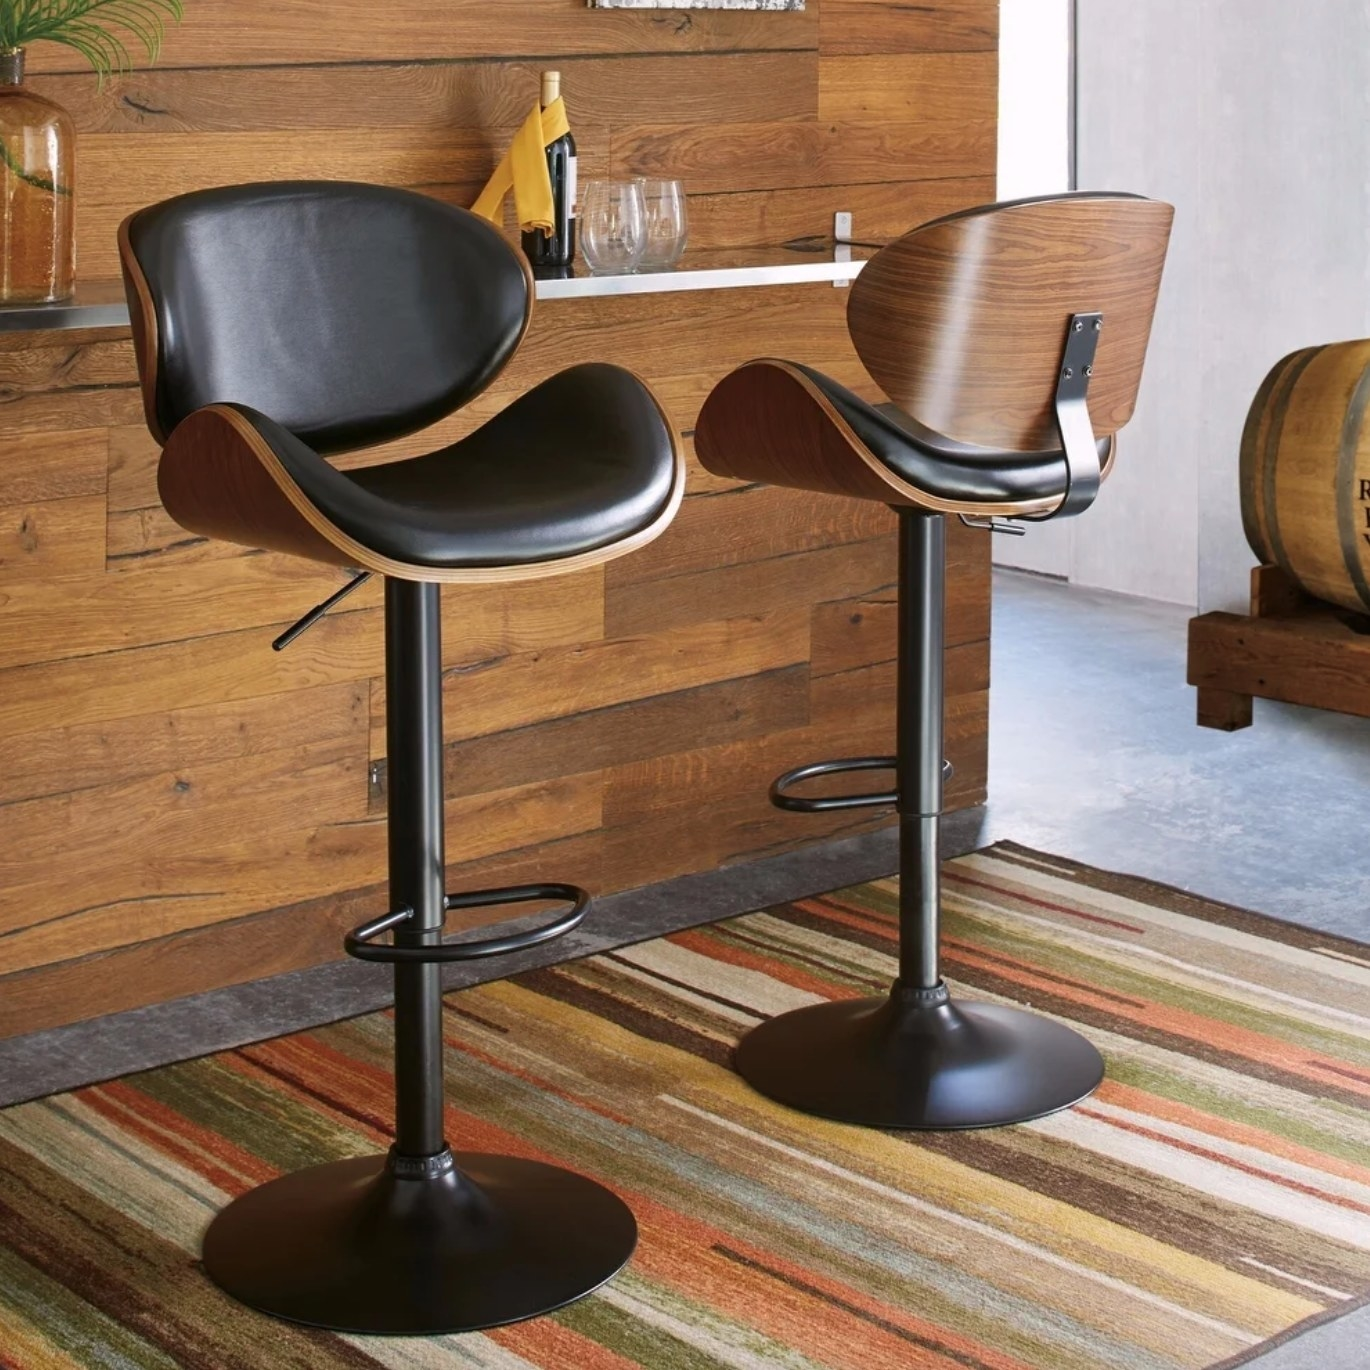 The adjustable bar stool in black